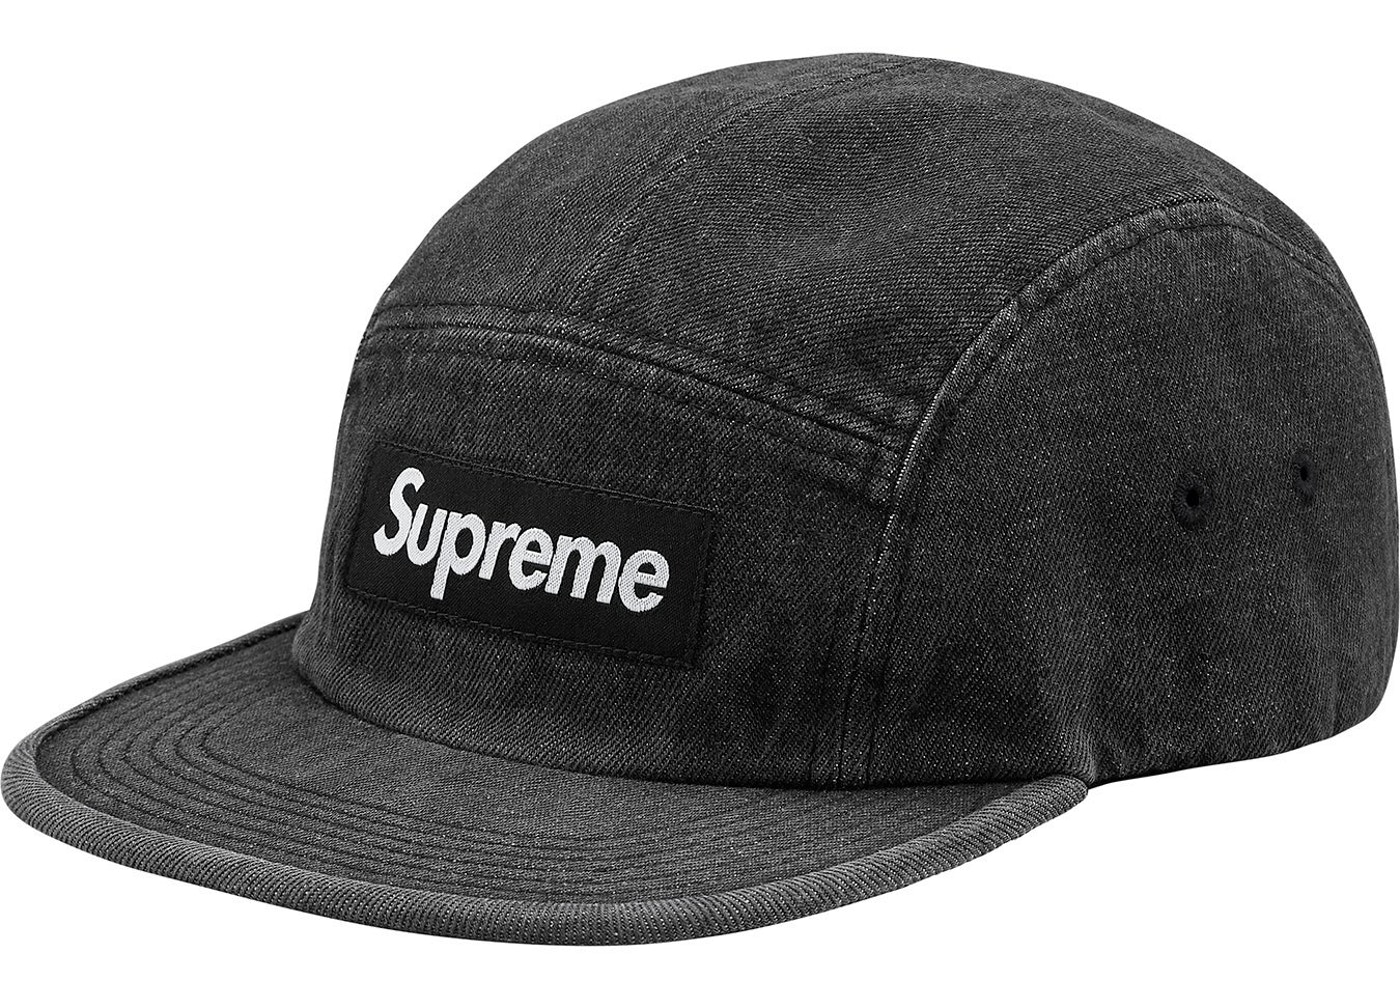 Supreme Denim Camp Cap Black - SS18 a70c4a72348